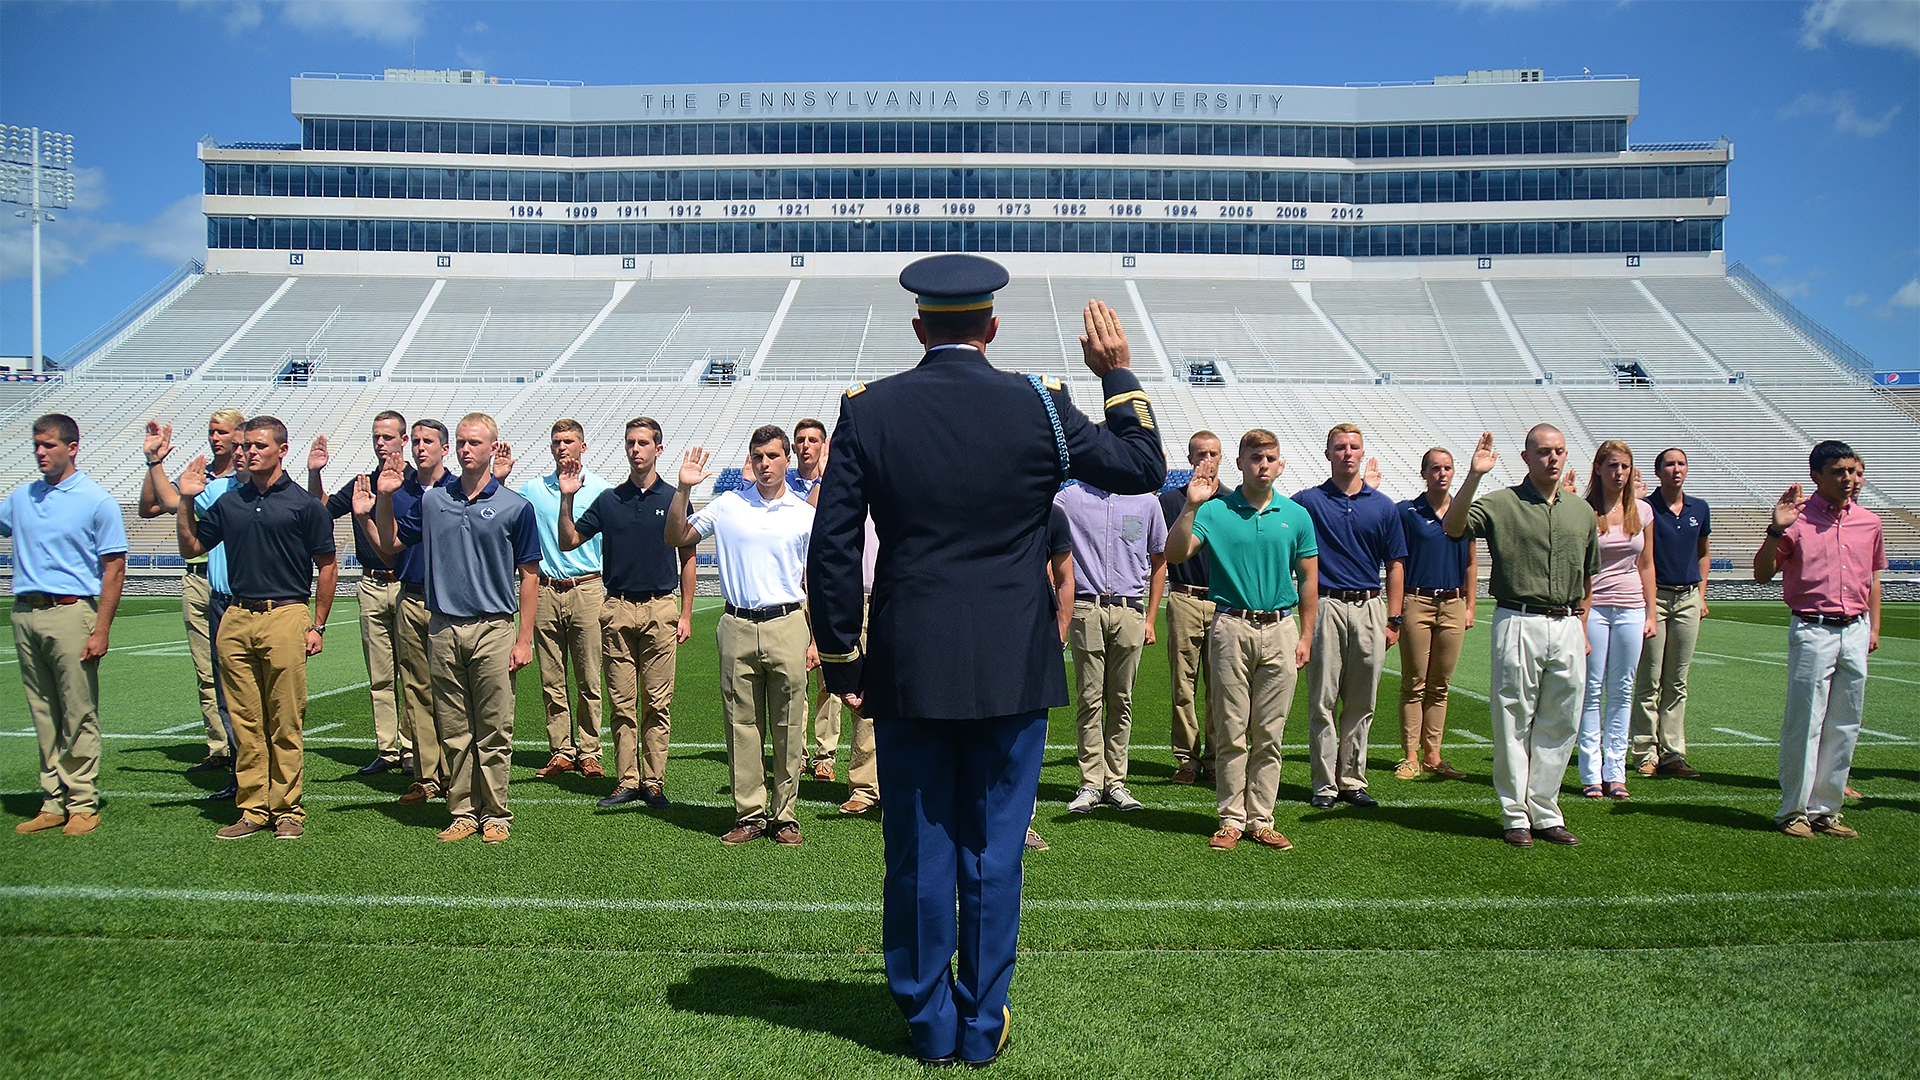 Army ROTC cadets at contracting ceremony in Beaver Stadium